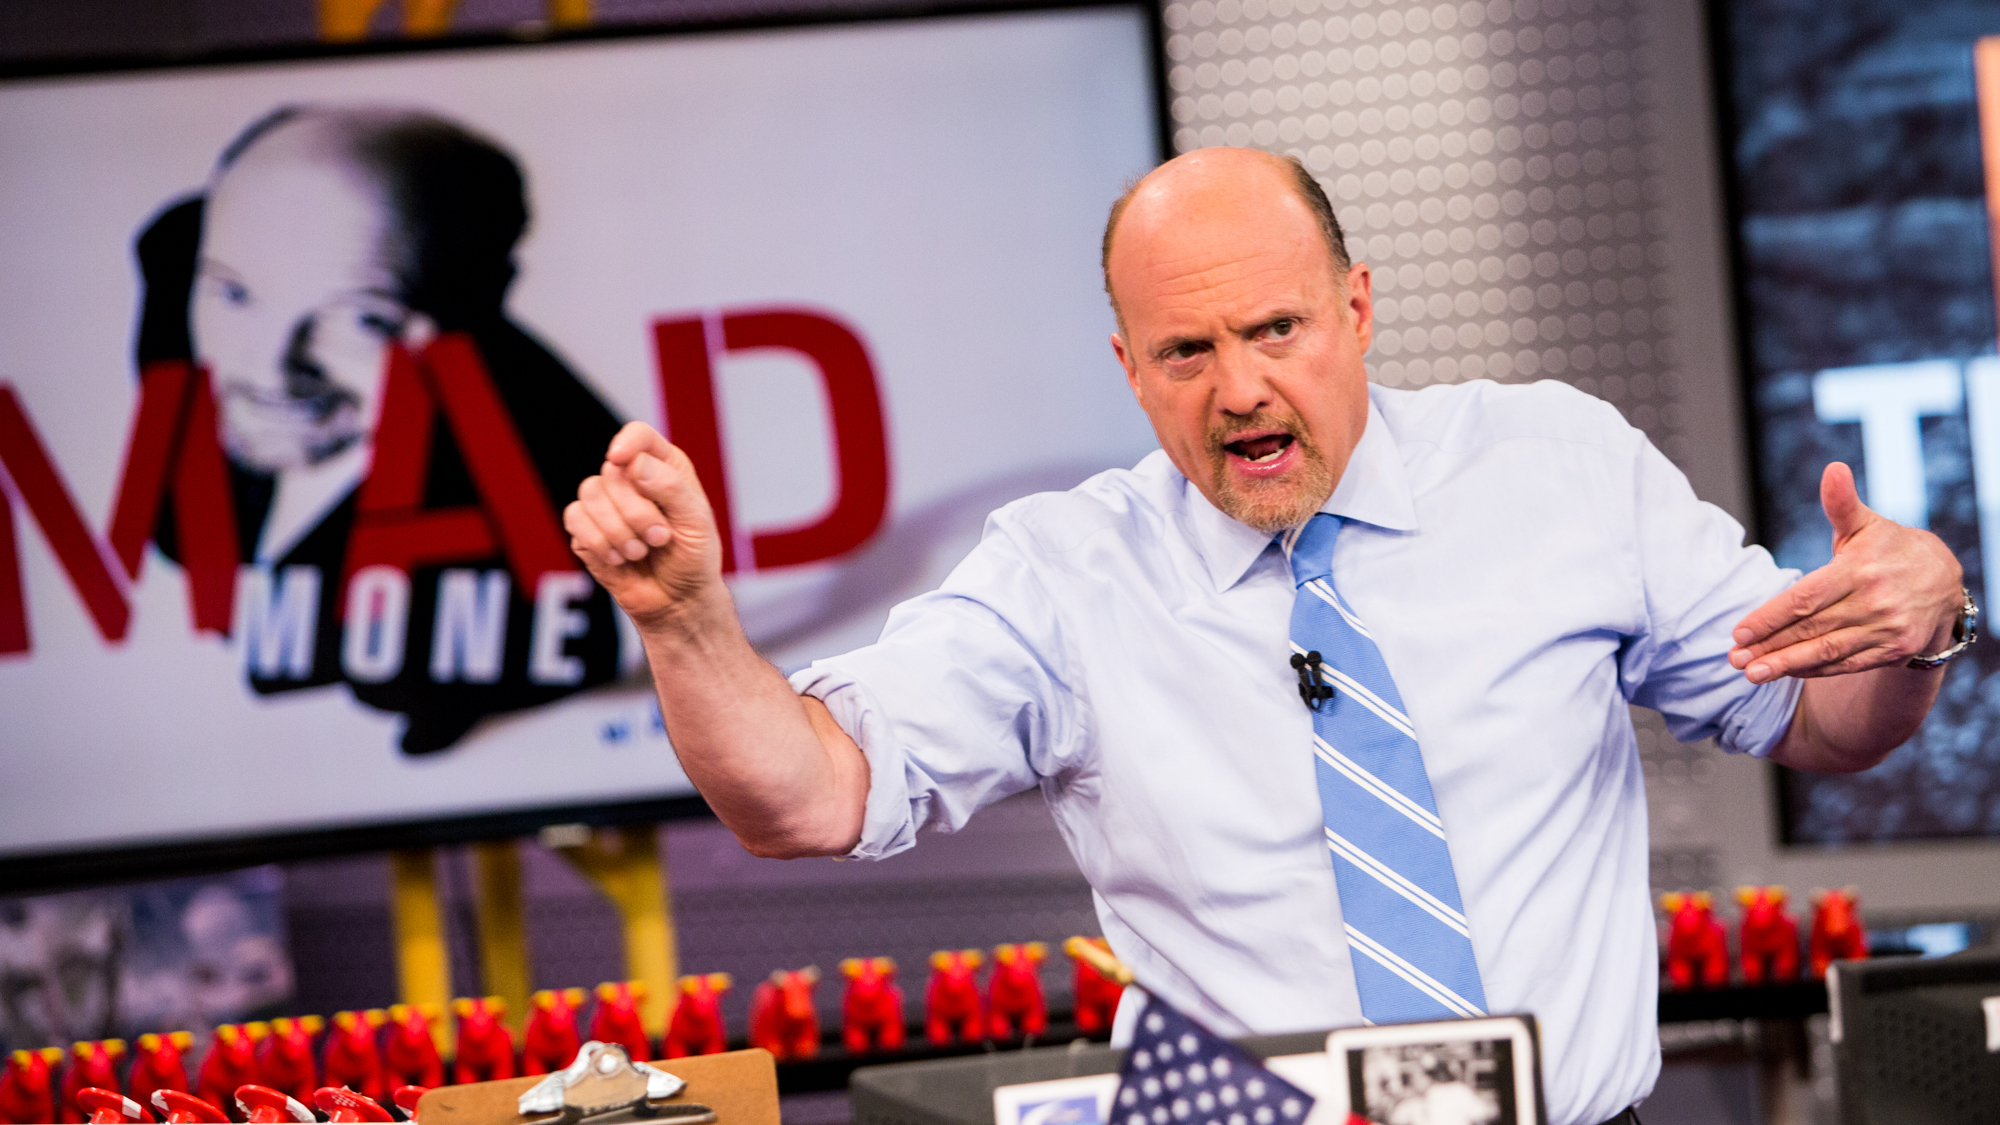 Jim Cramer Family